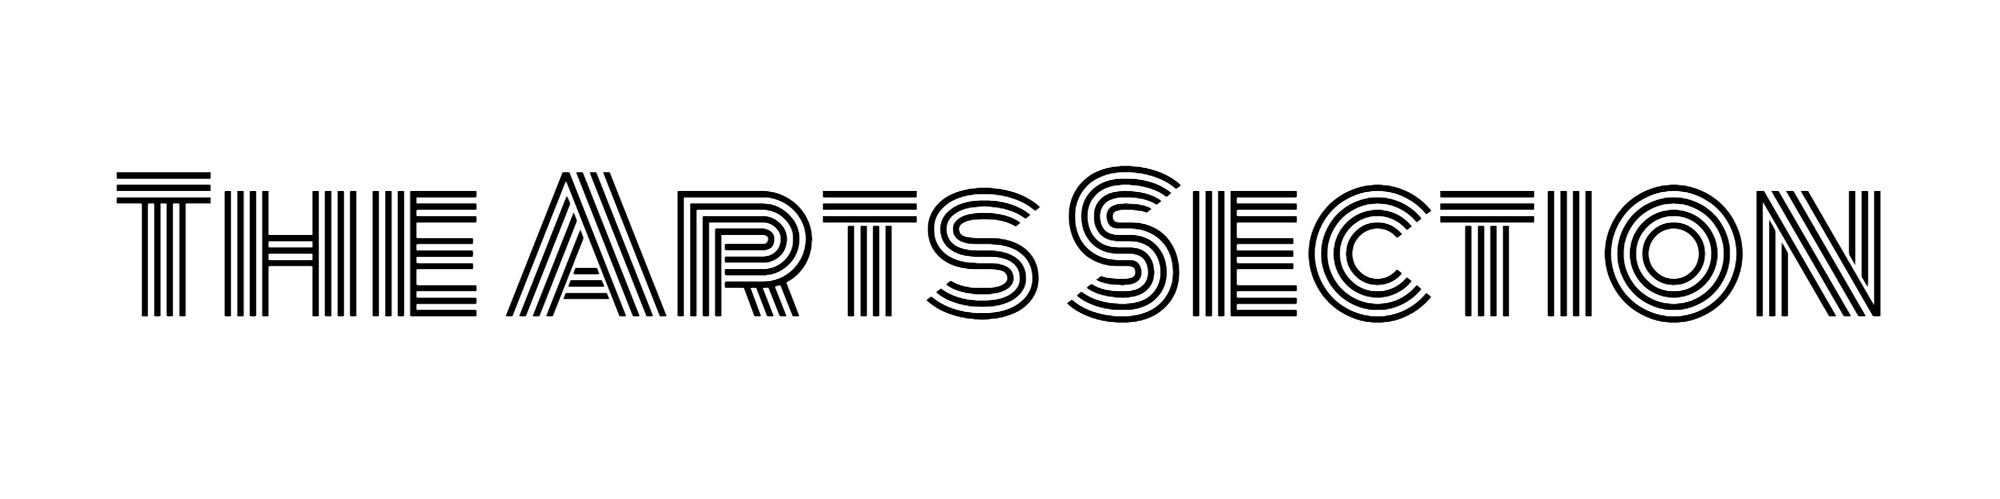 The Arts Section-logo-black.png